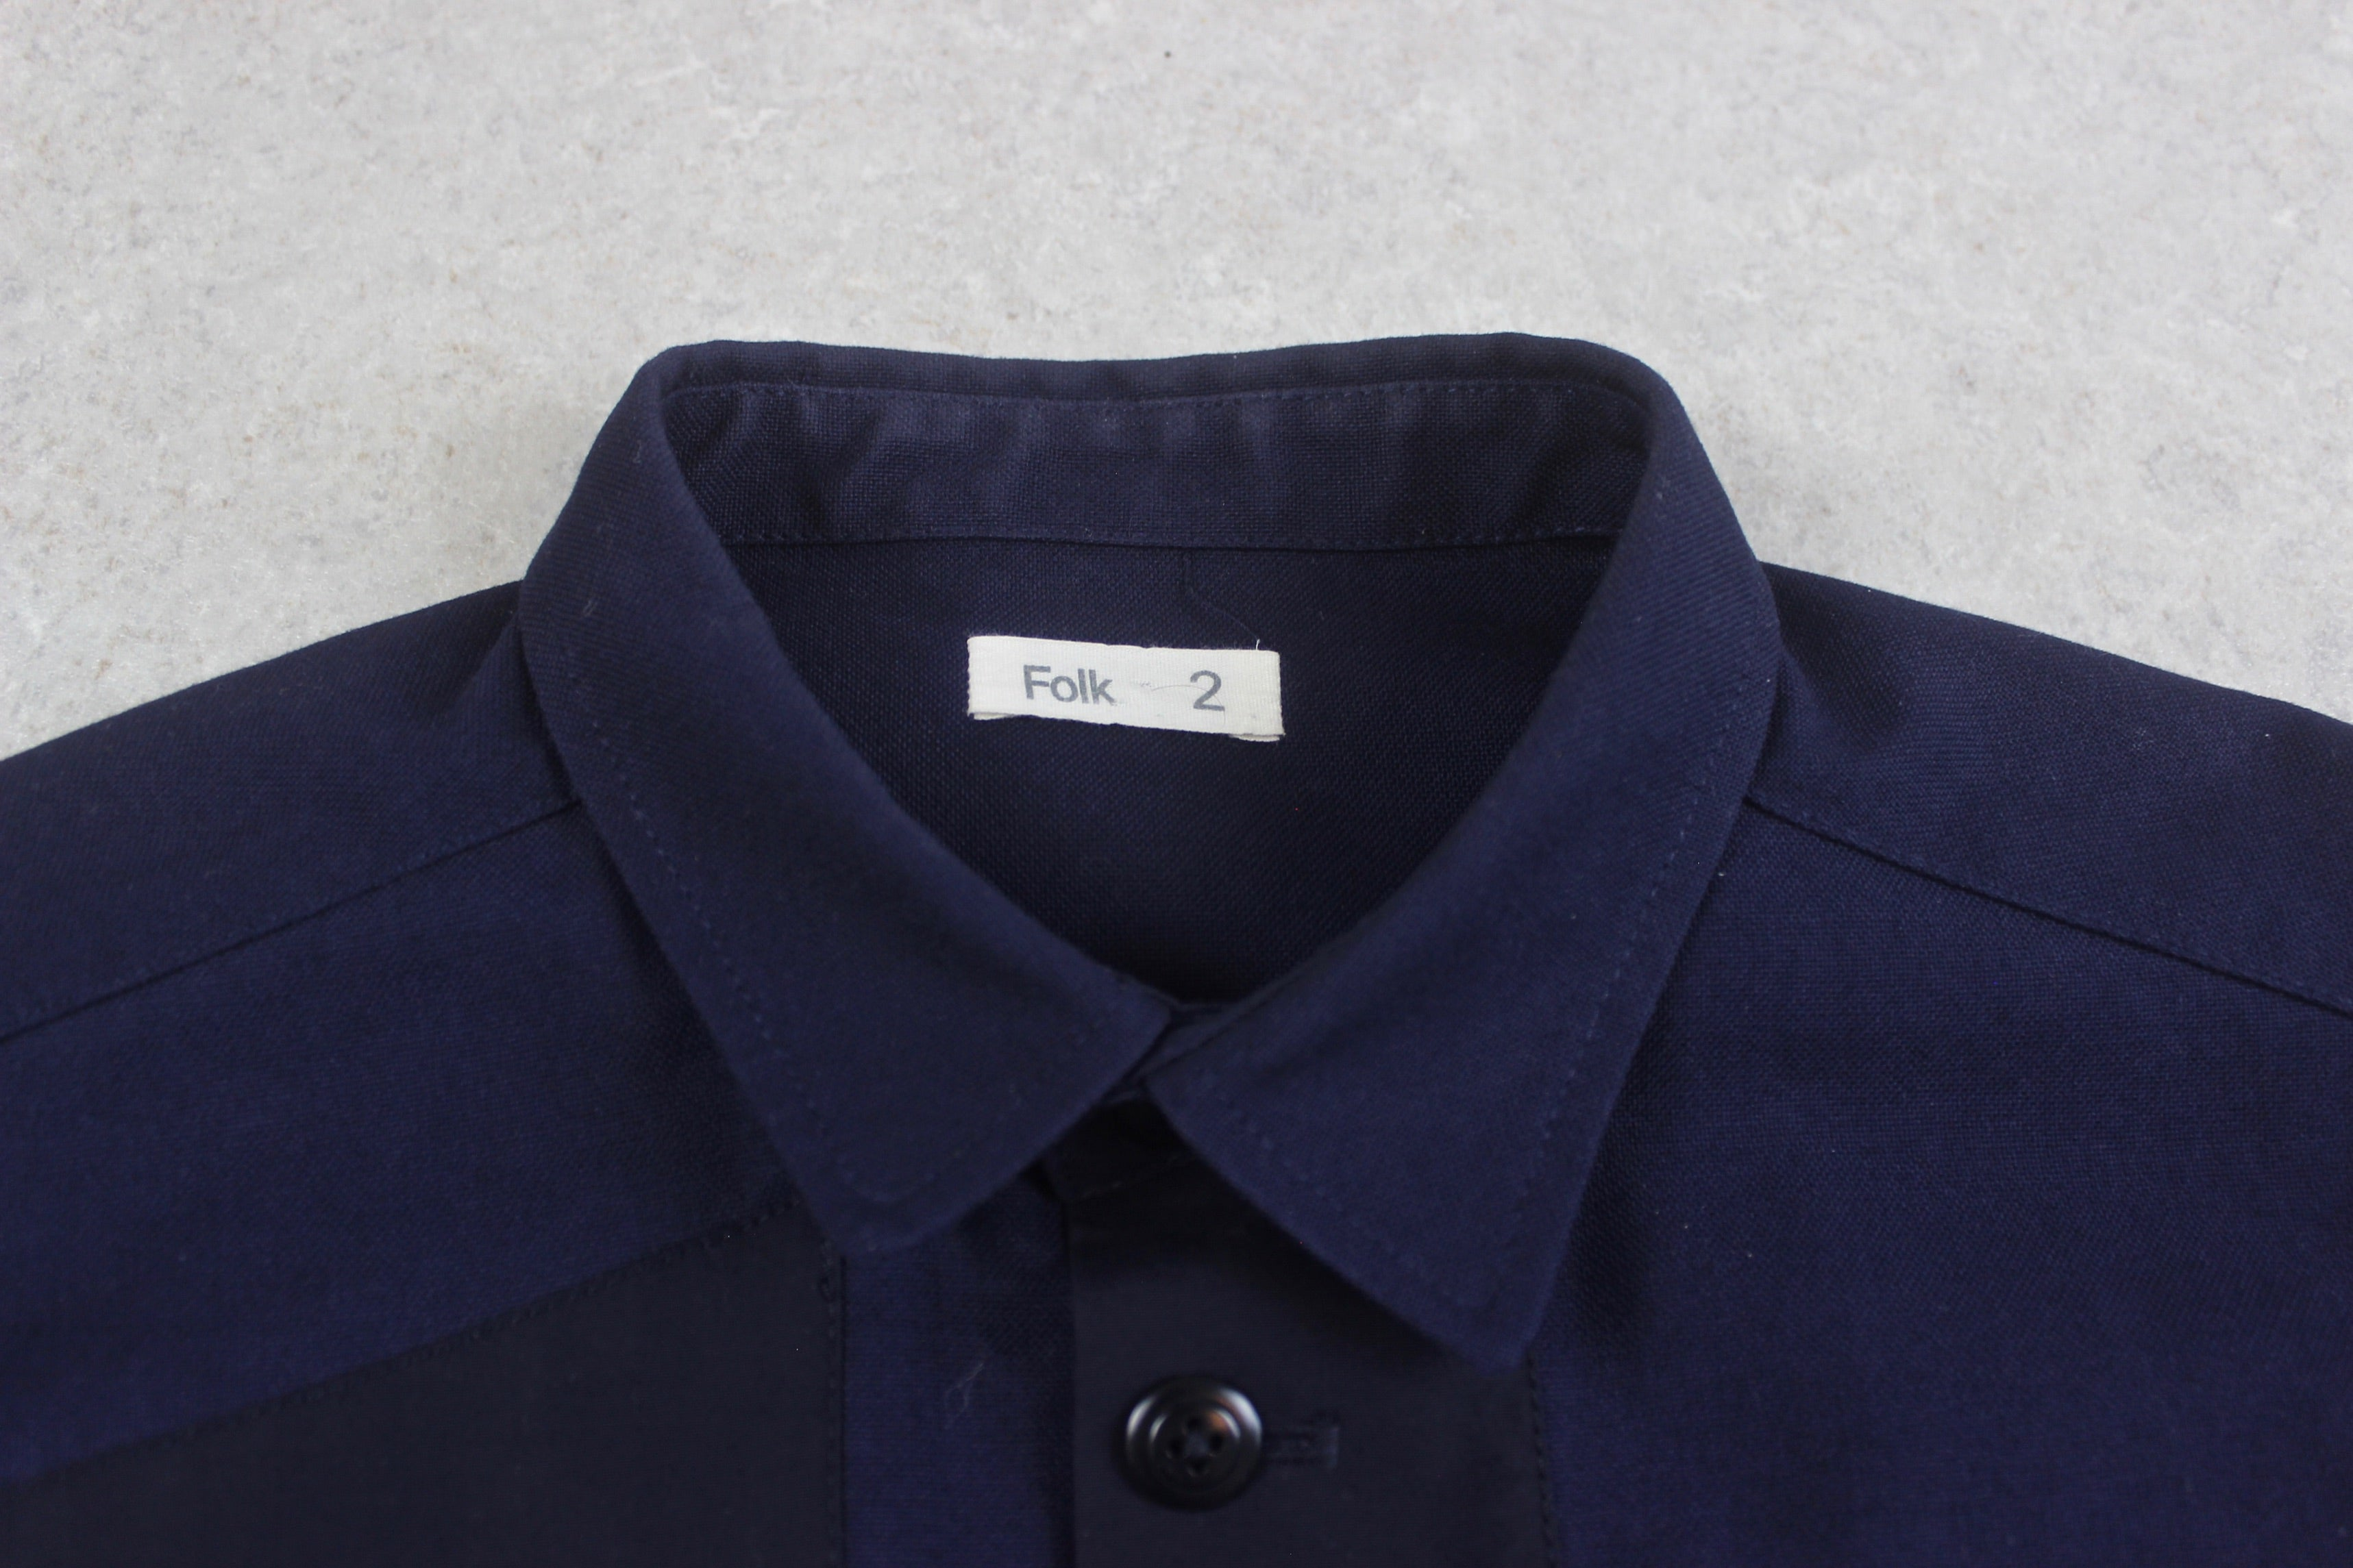 Folk - Workwear Patch Jacket - Navy Blue - 2/Small